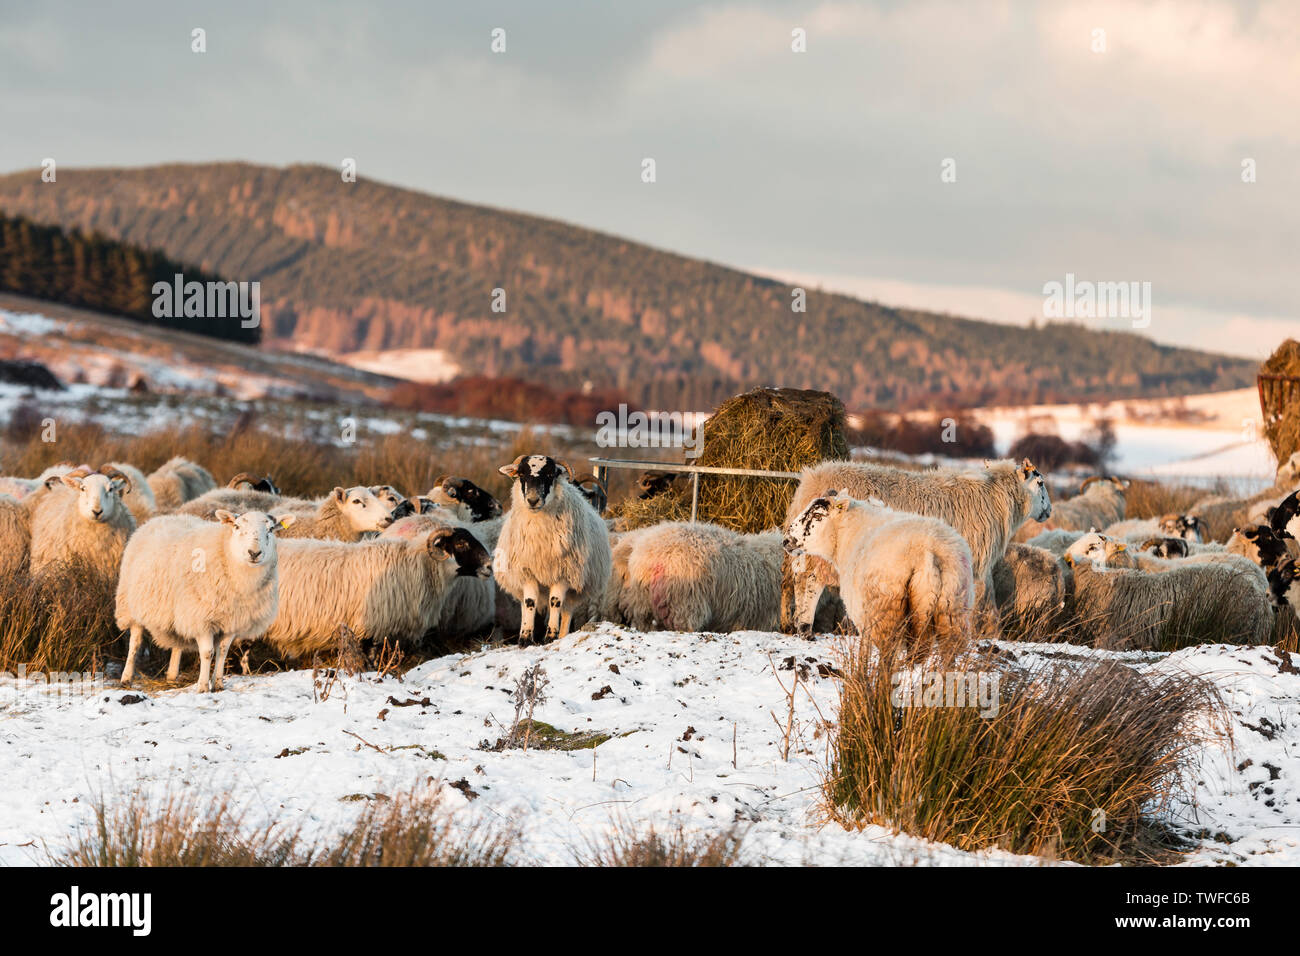 Sheep on the Braes of Abernethy in the Cairngorms National Park of Scotland. - Stock Image